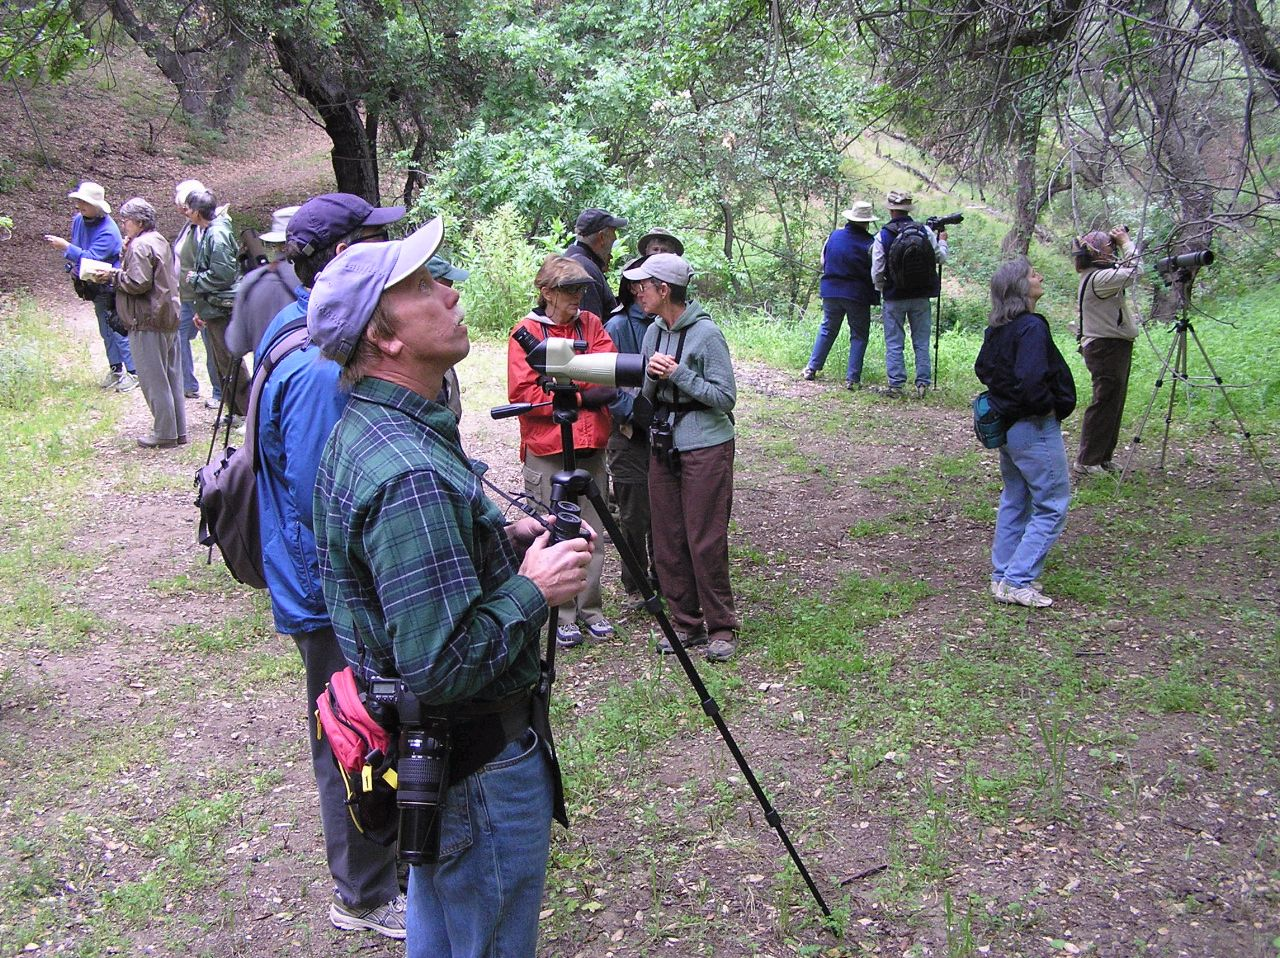 THE AUDUBON SOCIETY visits Meher Mount on April 11, 2009, to enjoy bird watching in this semi-wilderness area. (Ray Johnston photo, 2009.)